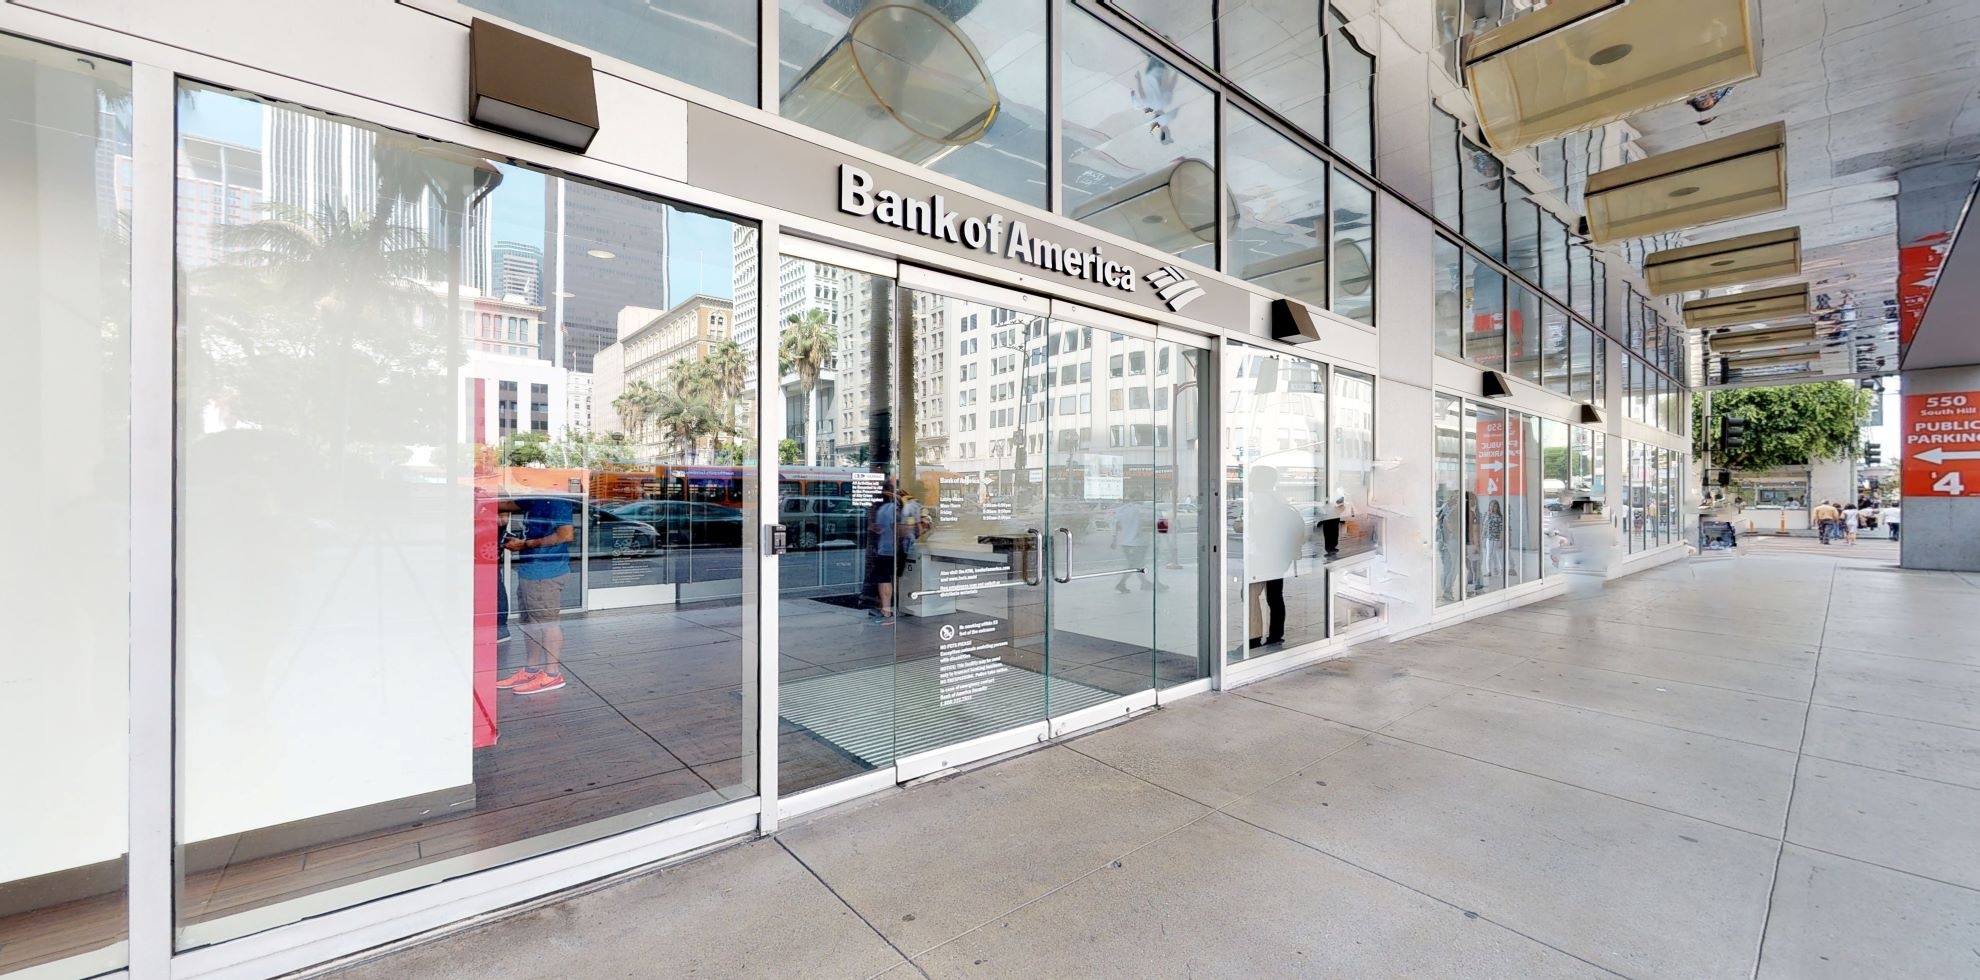 Bank of America financial center with walk-up ATM | 550 S Hill St, Los Angeles, CA 90013